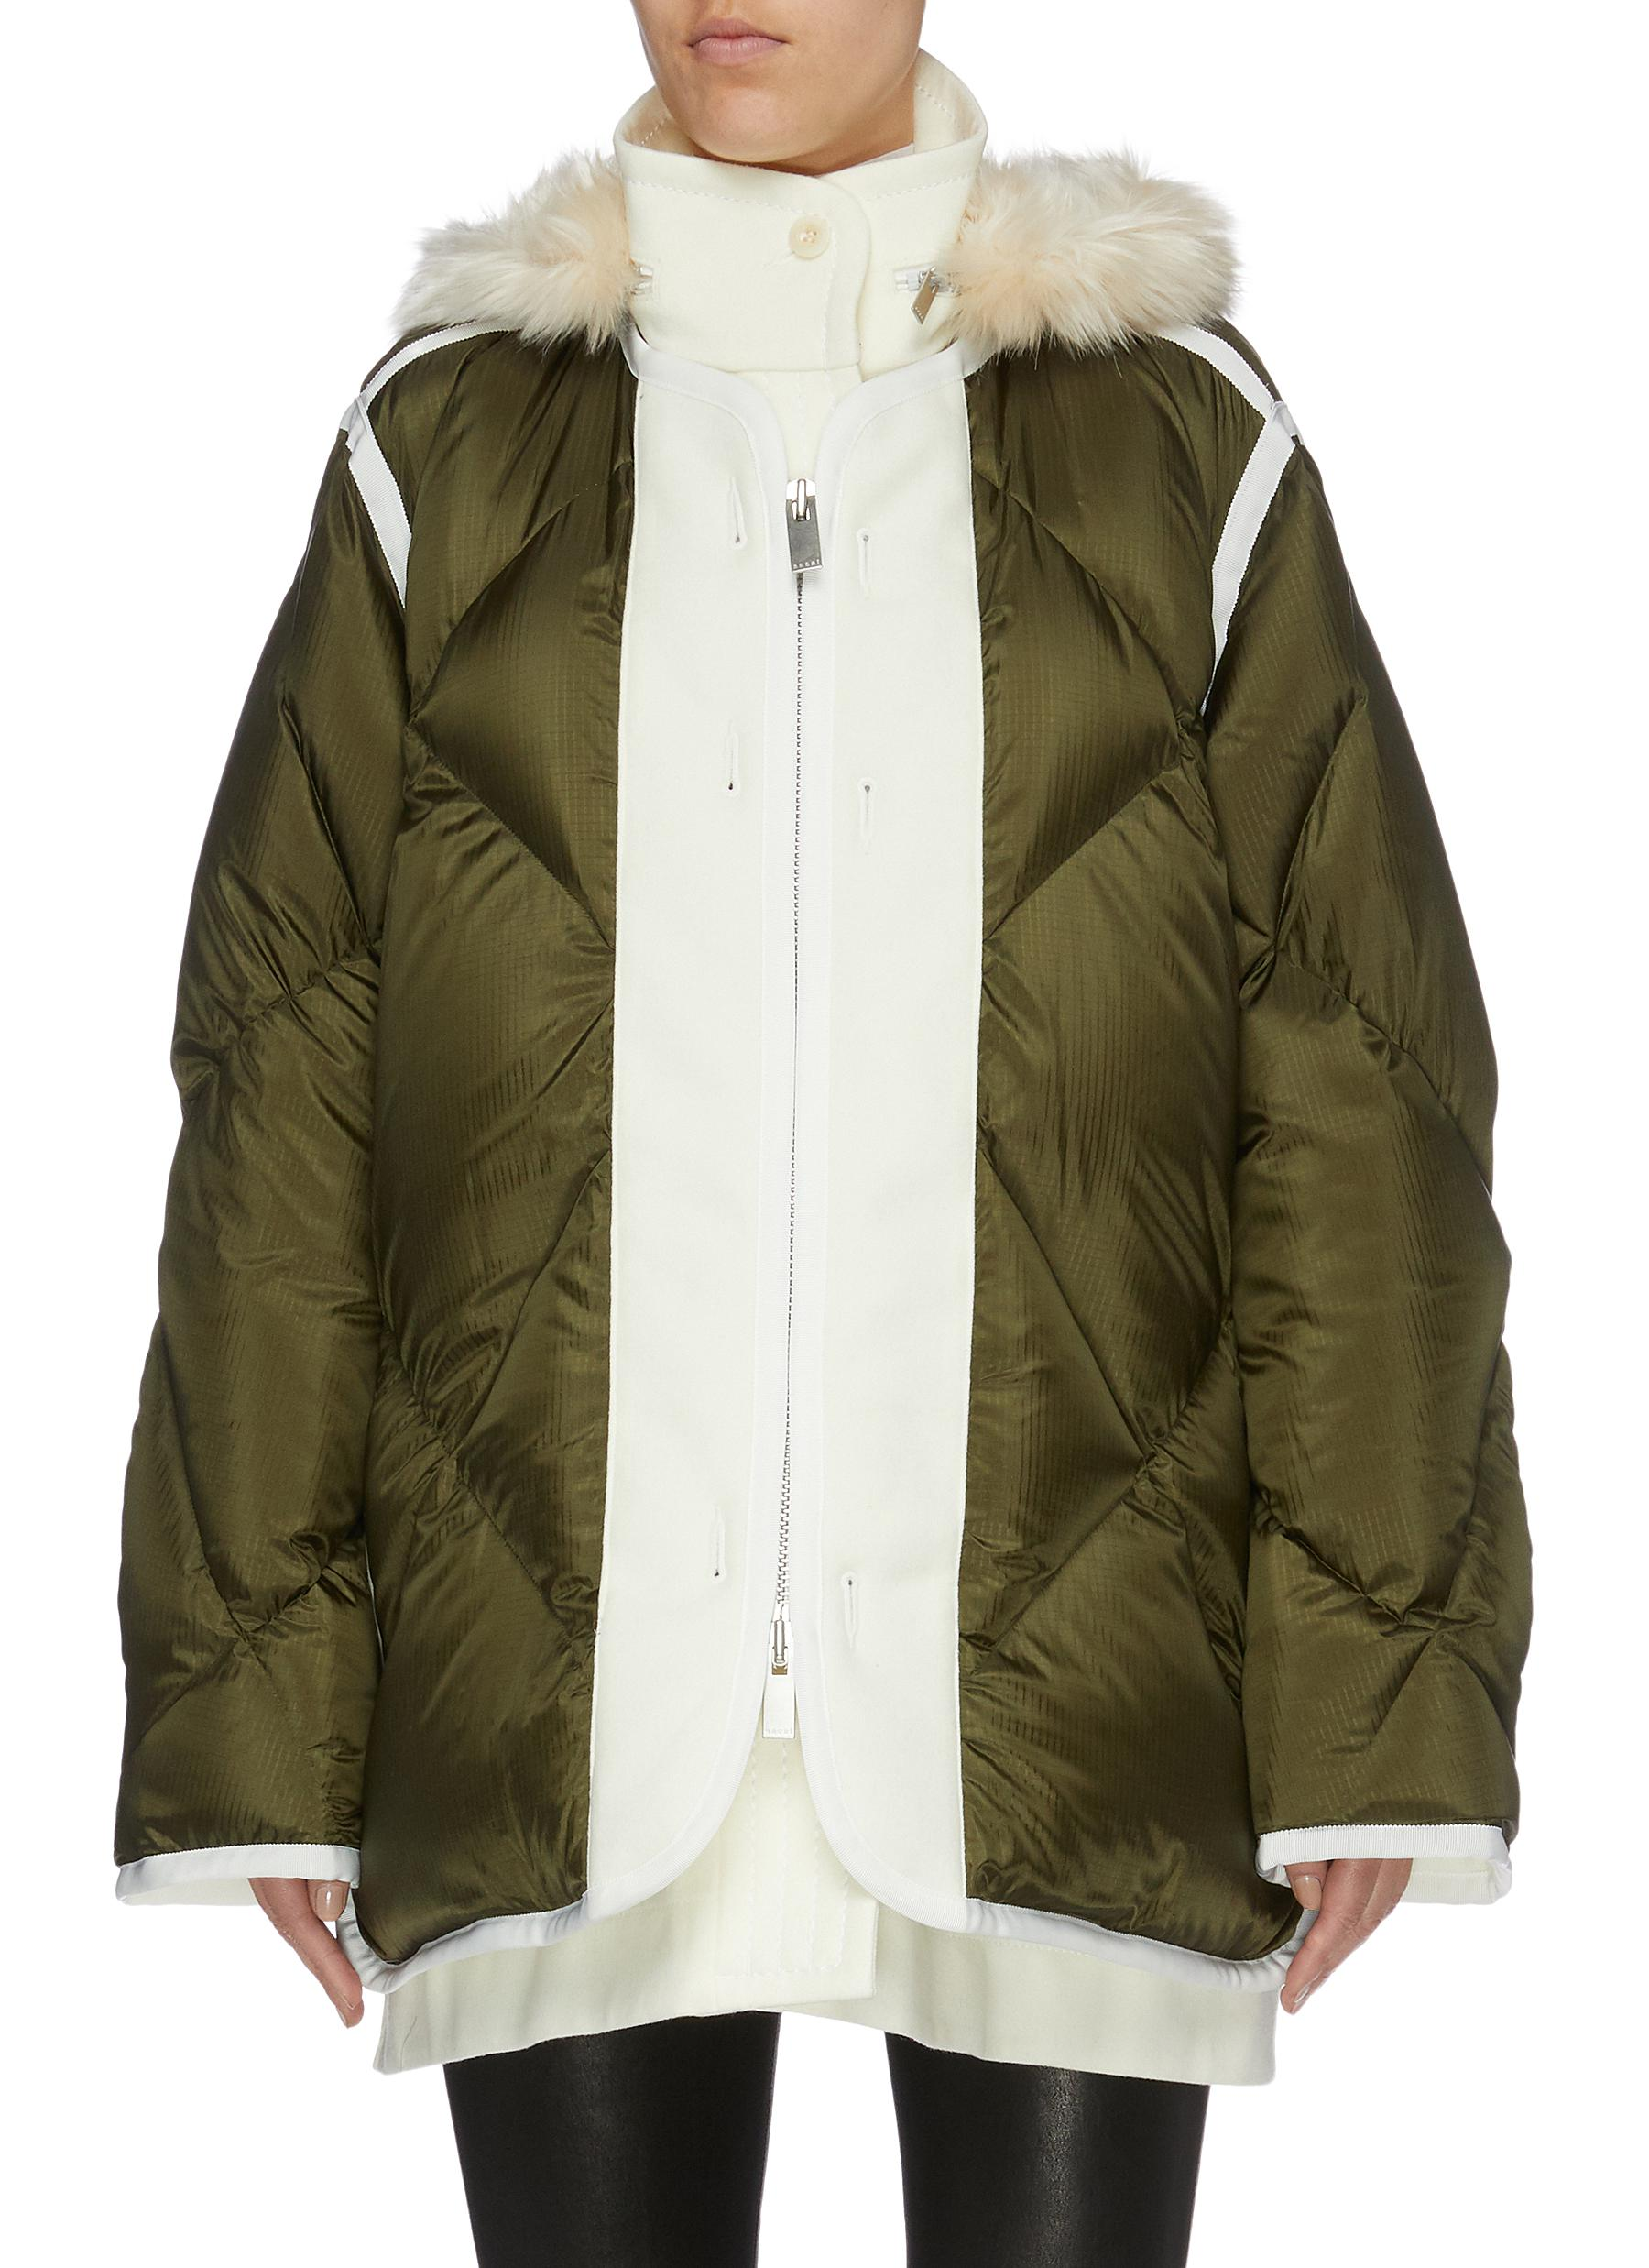 Faux fur trim hooded contrast placket down puffer jacket by Sacai